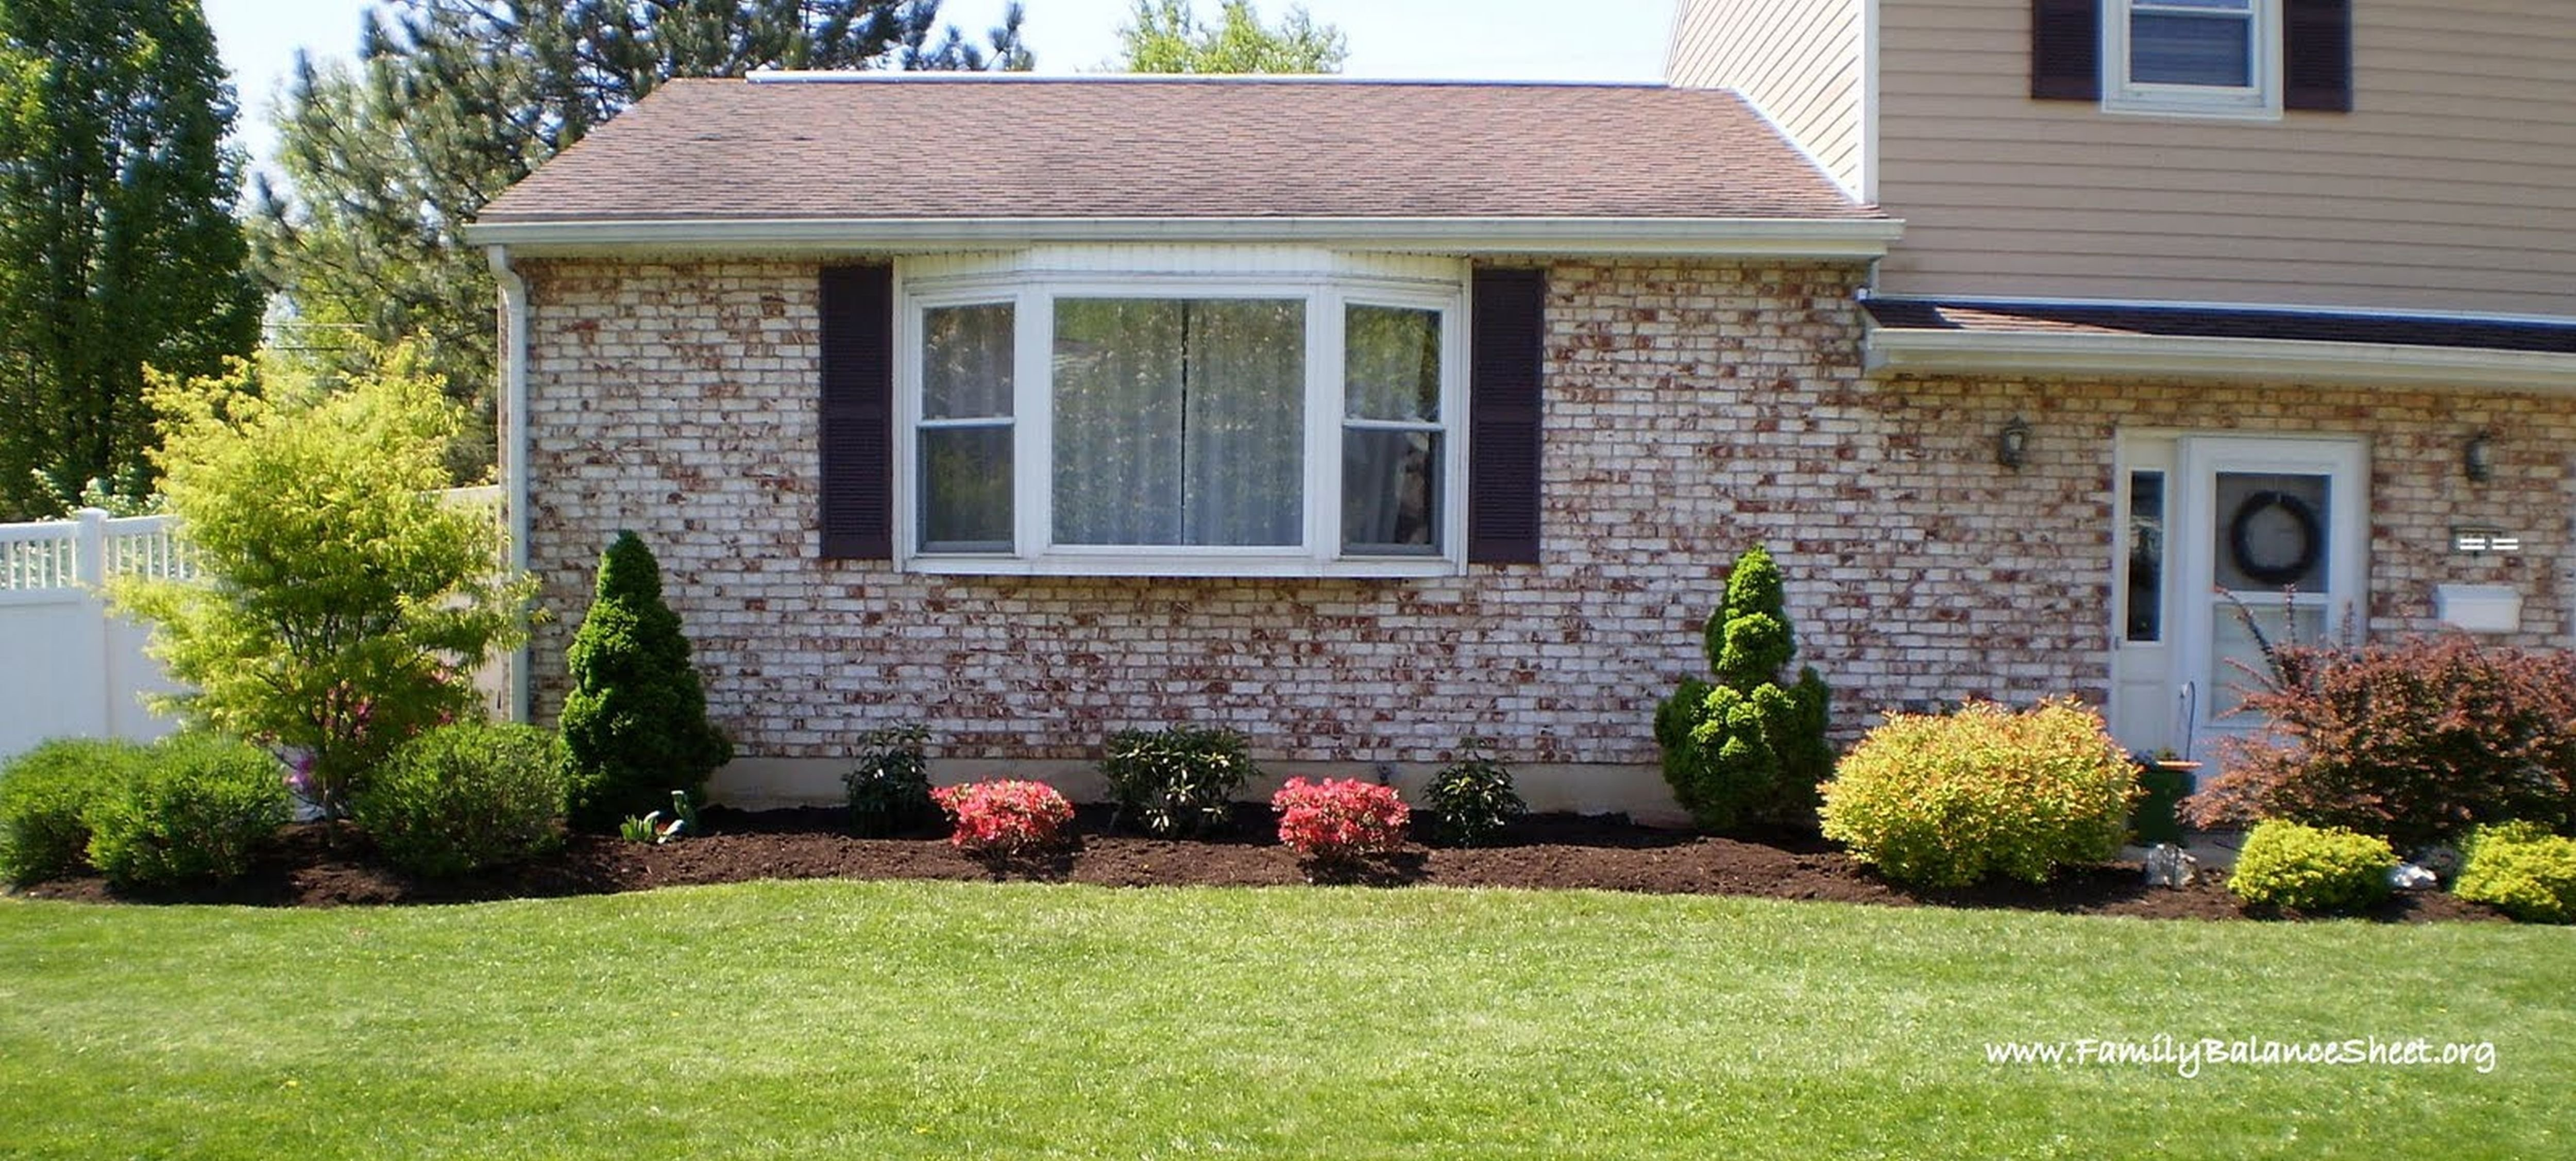 10 Attractive Simple Front Yard Landscaping Ideas Pictures front yard unusual simple front yard landscaping ideas photos